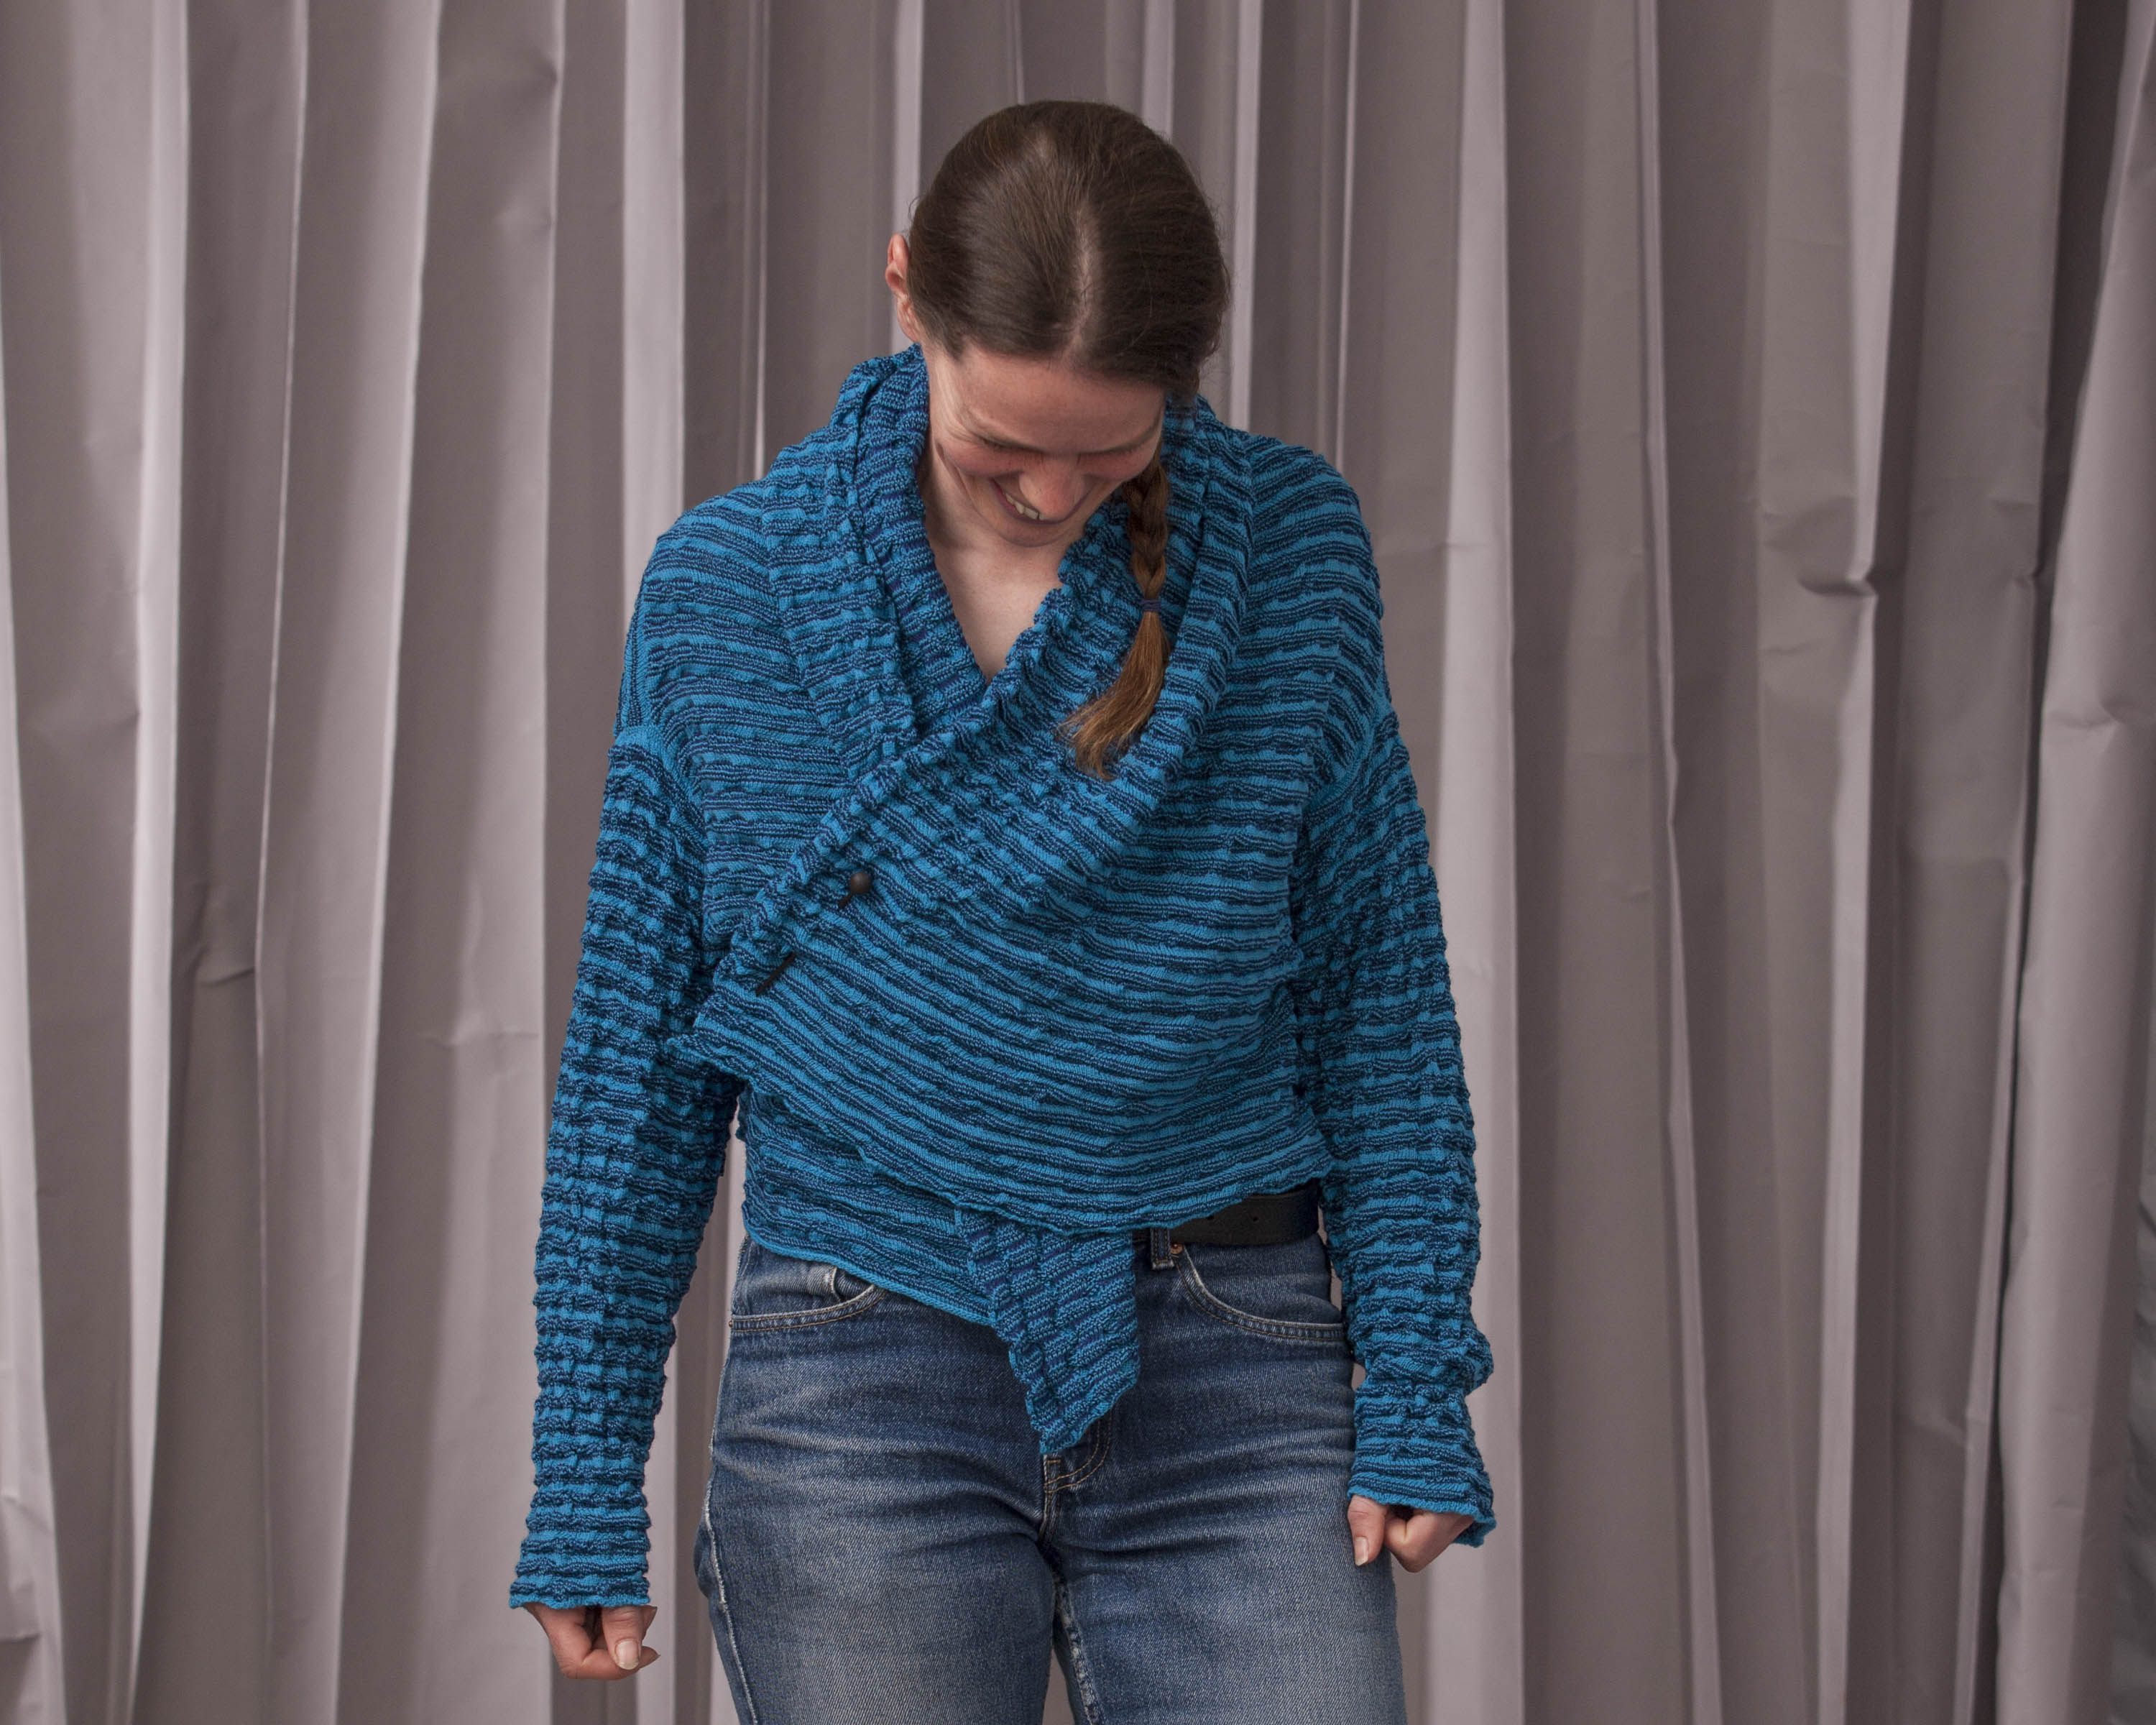 Model wears a contemporary knitted open jacket in bright blue, softly ridged textile